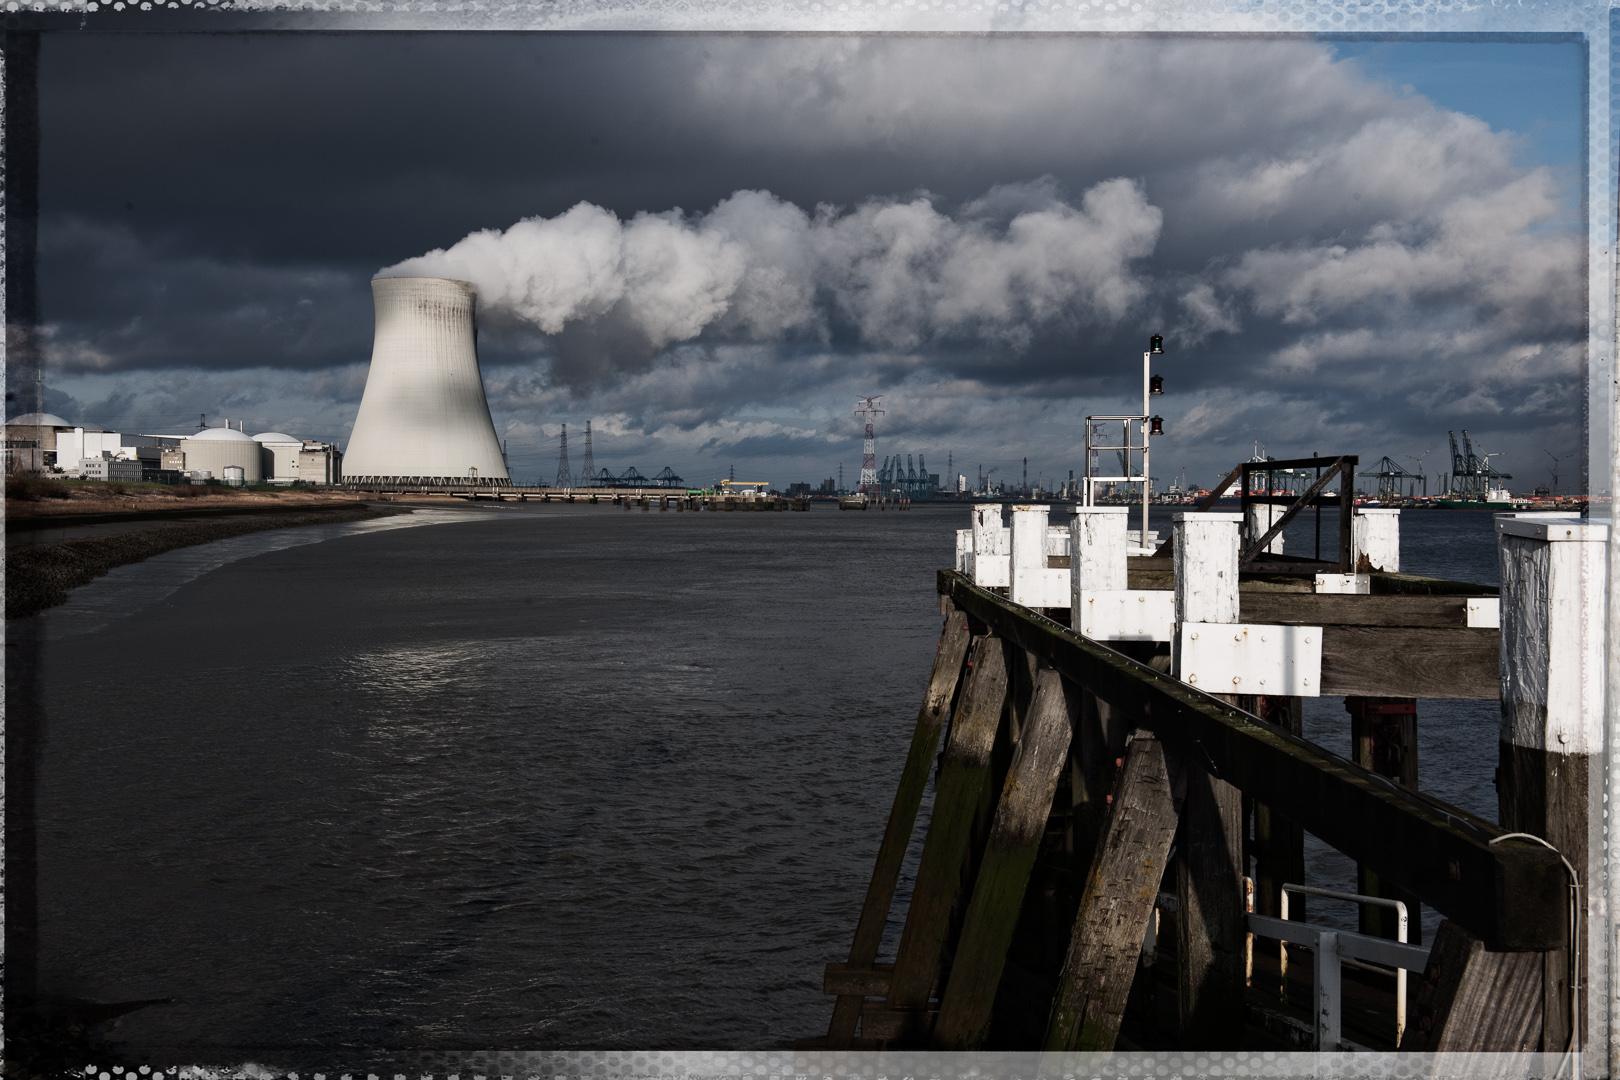 Nuclear Powerstation